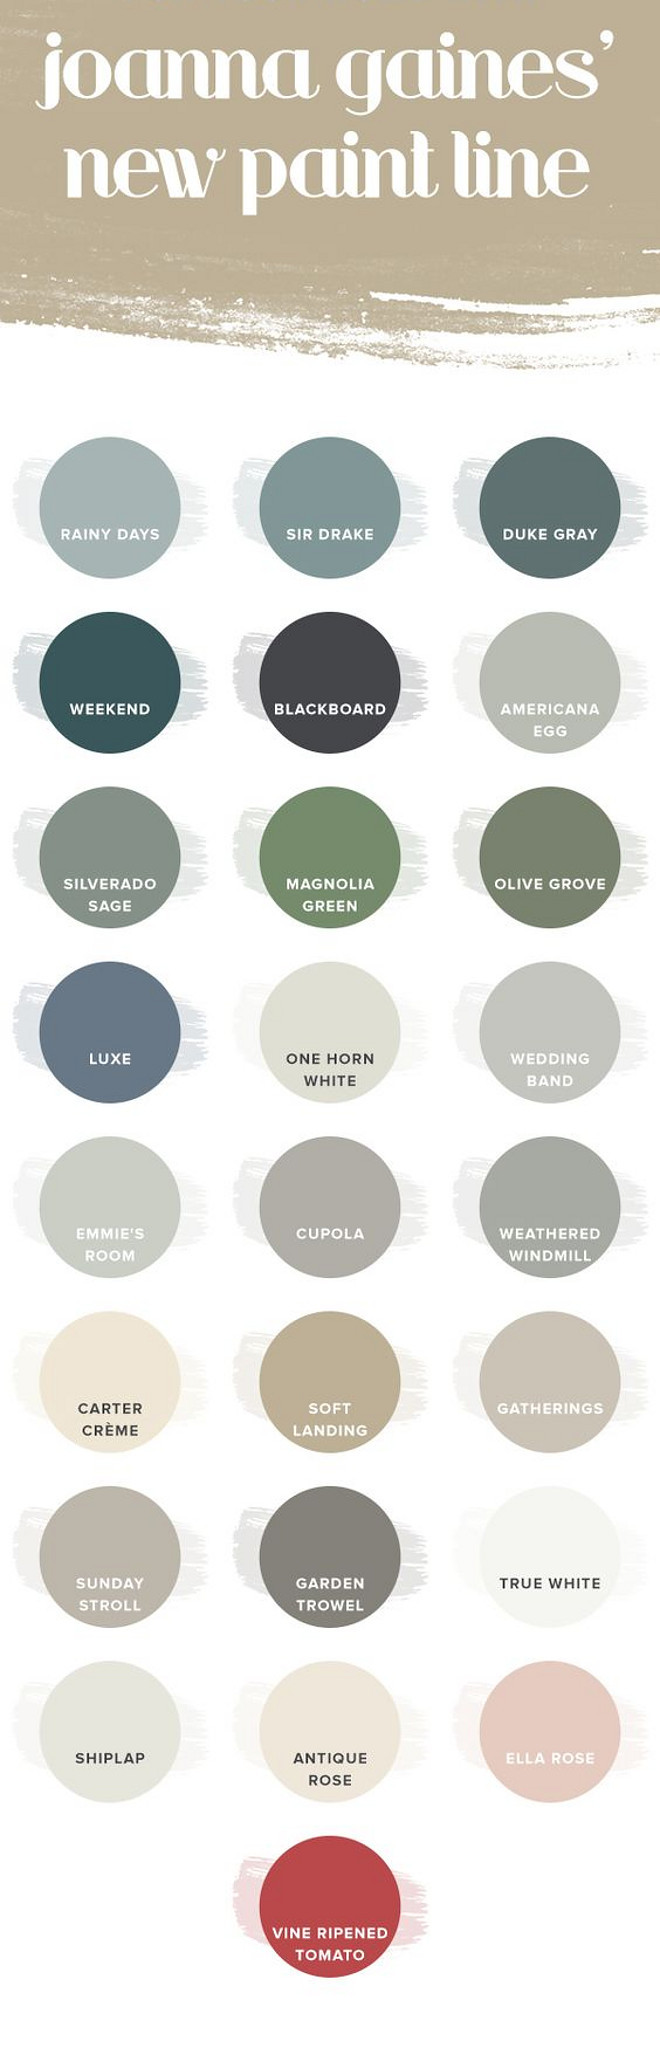 Best ideas about Joanna Gaines Favorite Paint Colors . Save or Pin Interior Design Ideas Home Bunch Interior Design Ideas Now.